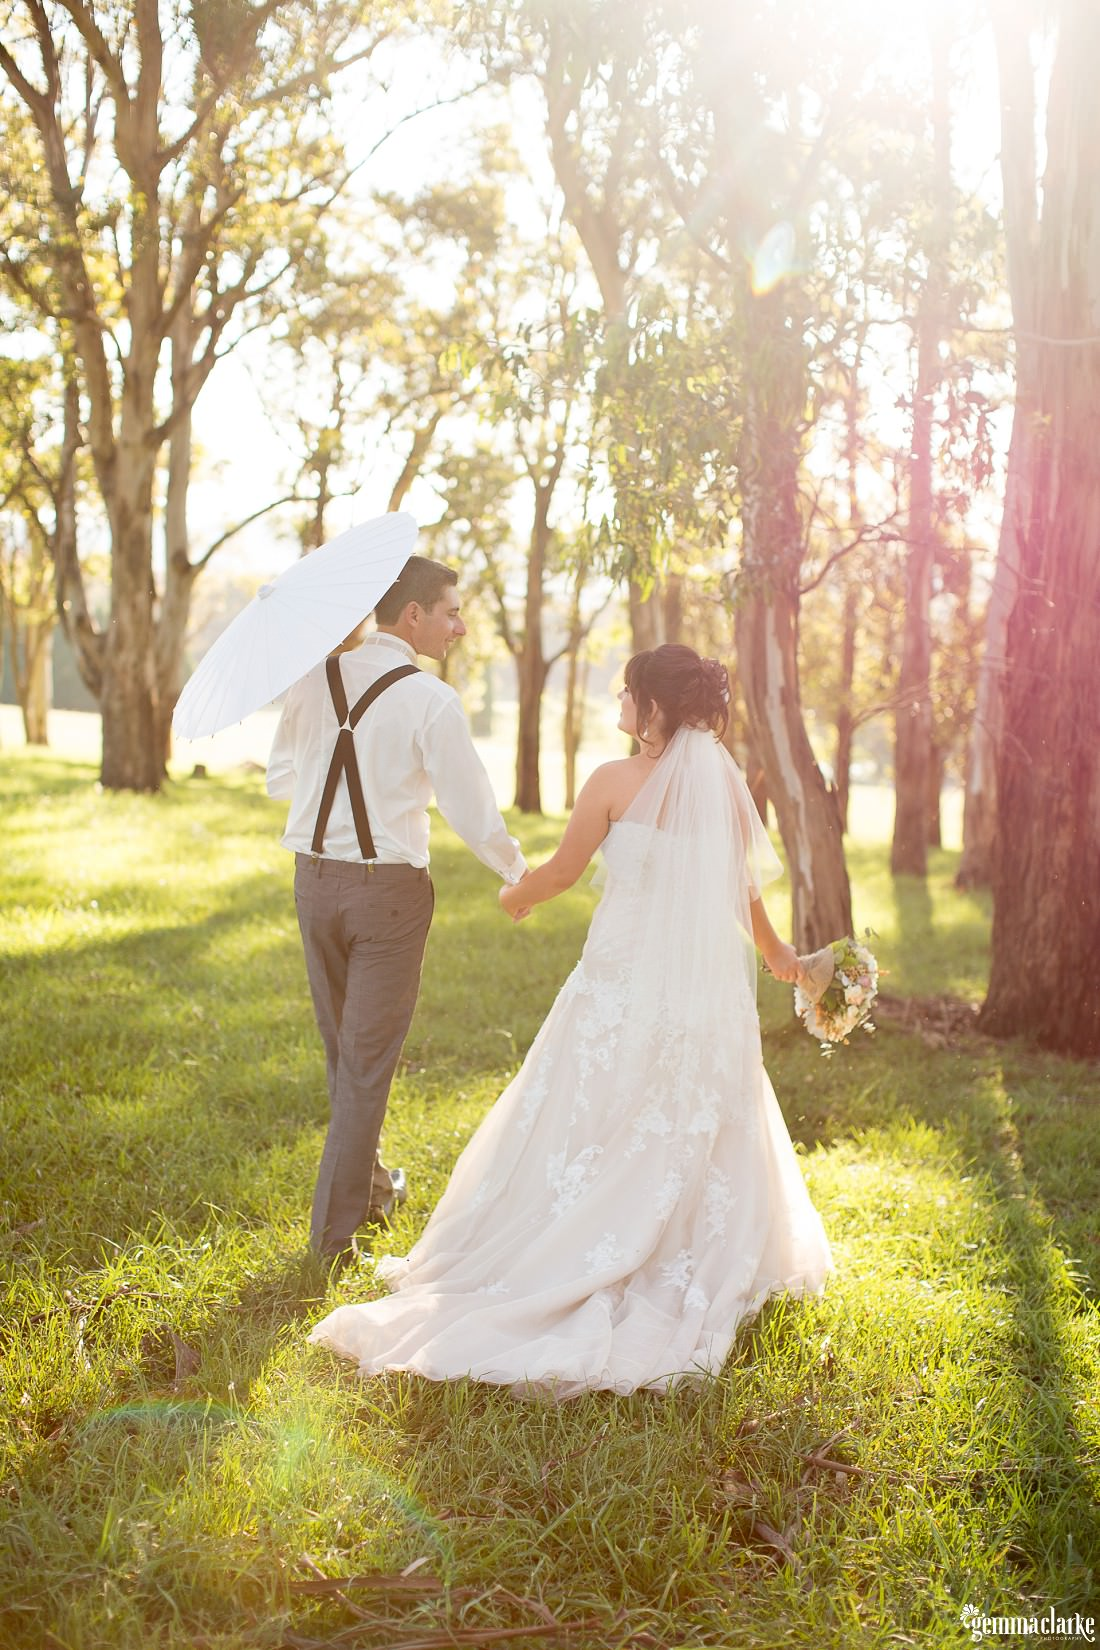 gemmaclarkephotography_mali-brae-wedding_southern-highlands-wedding_tahnae-and-james_0088